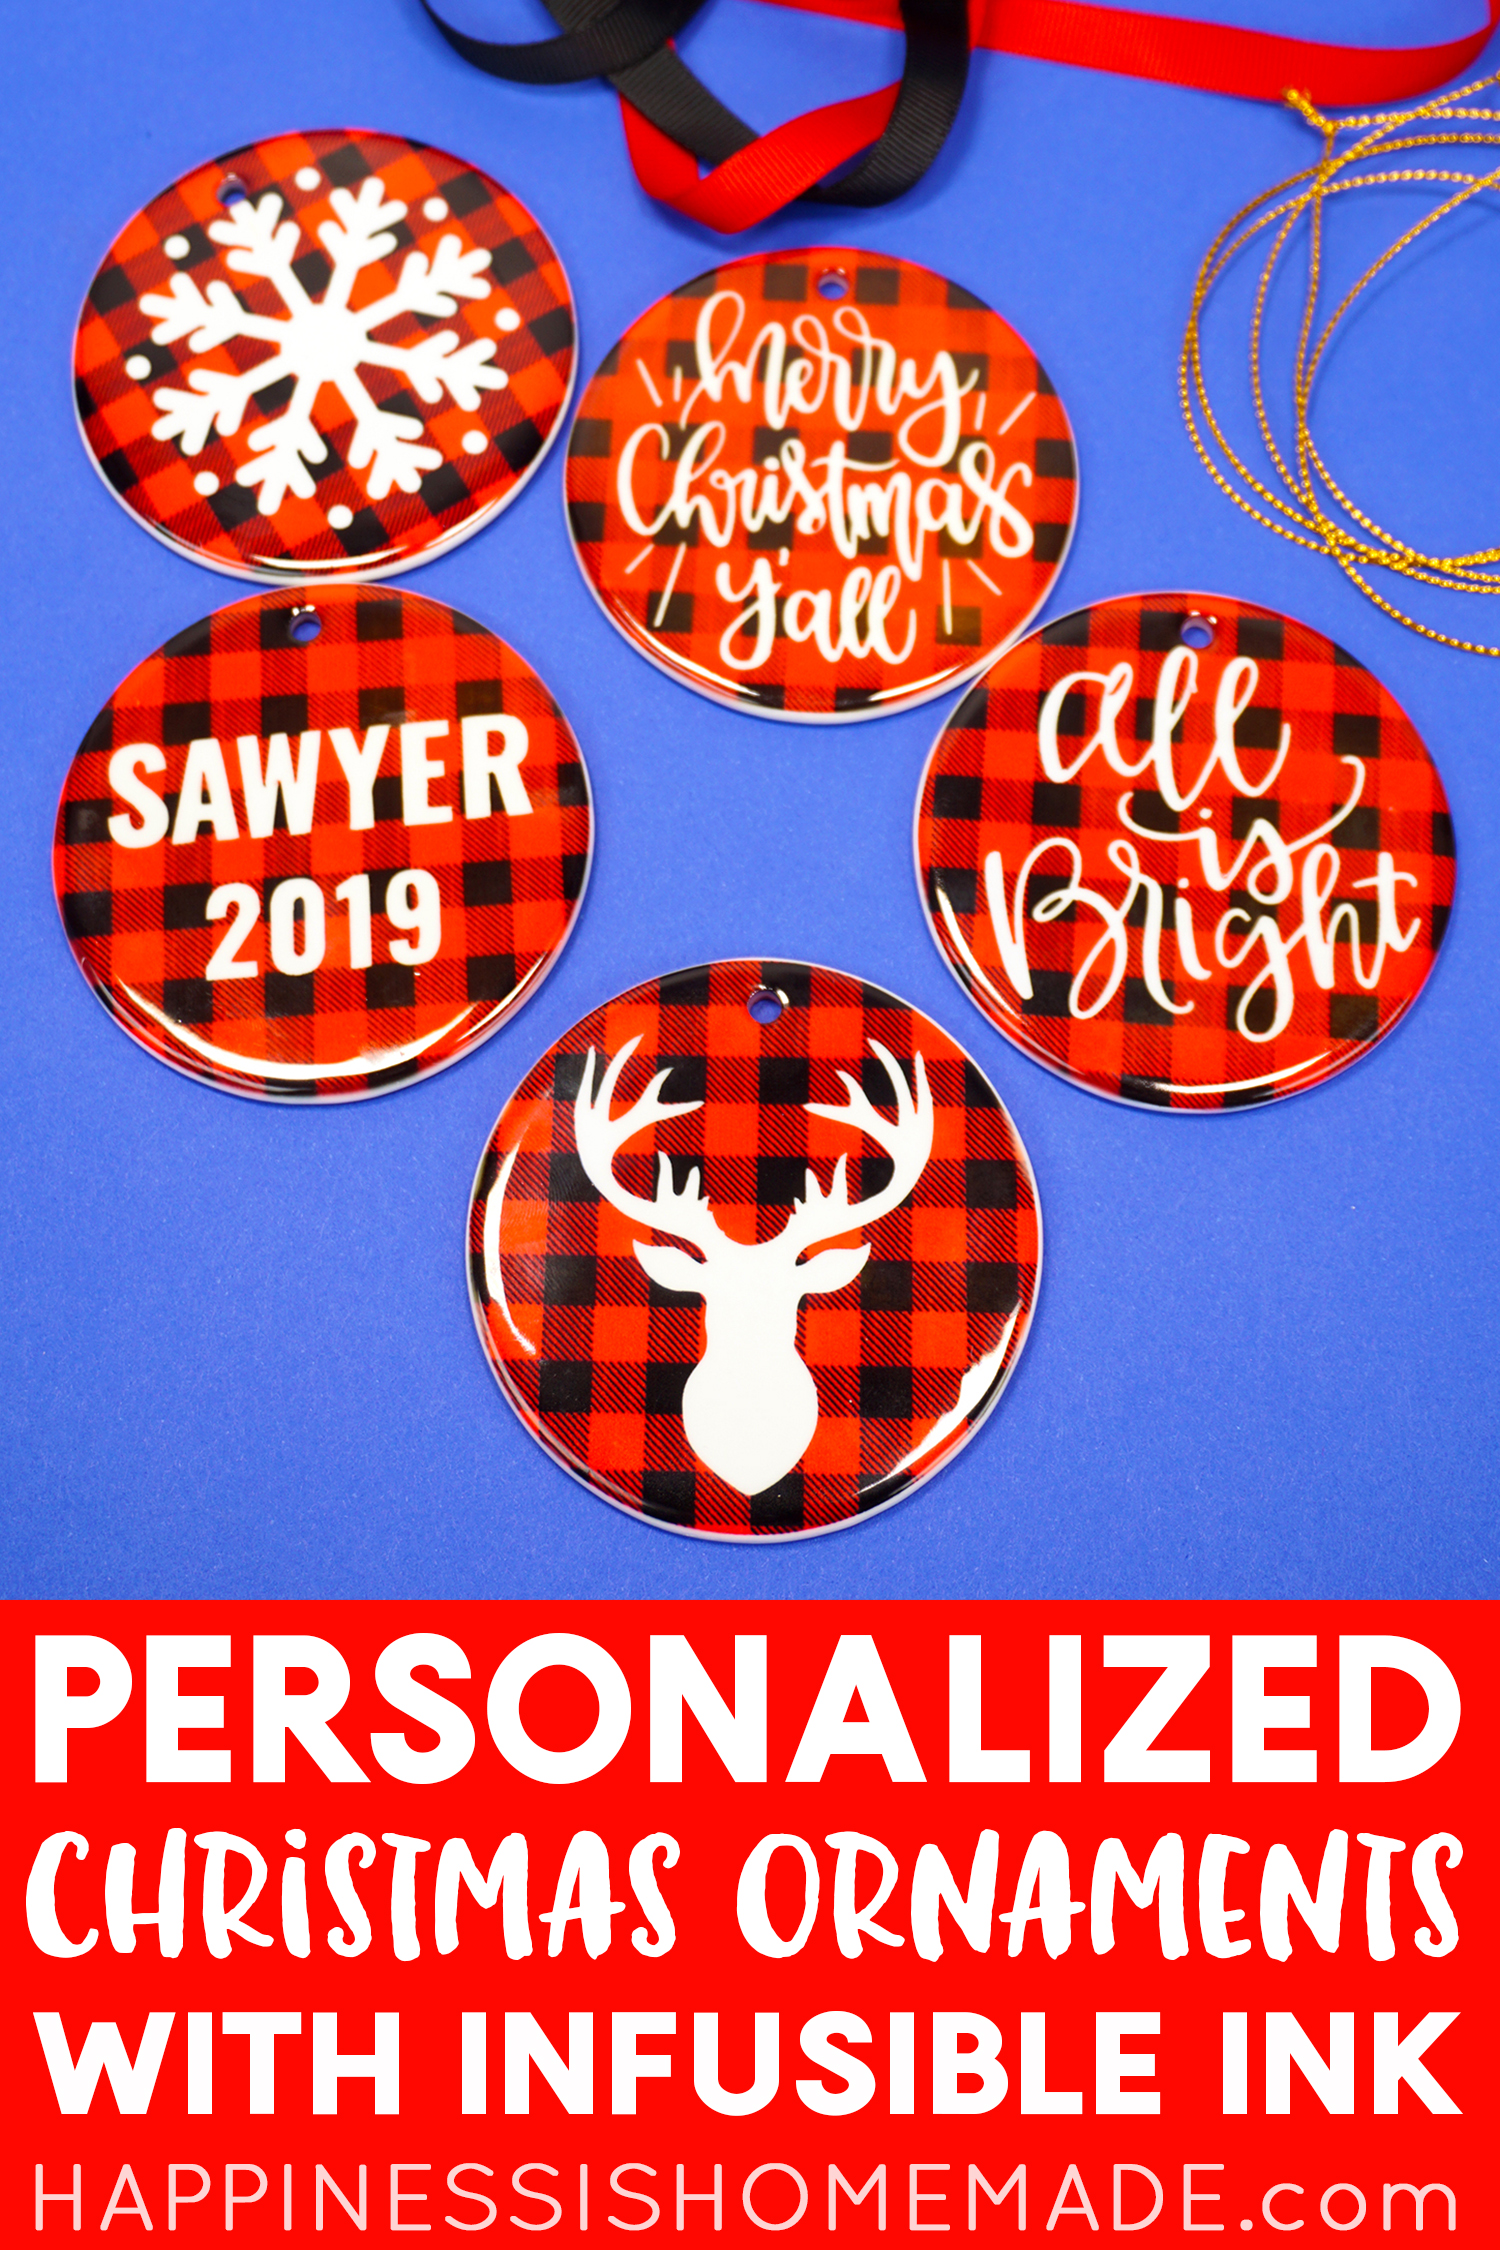 Personalized Christmas Ornaments With Infusible Ink